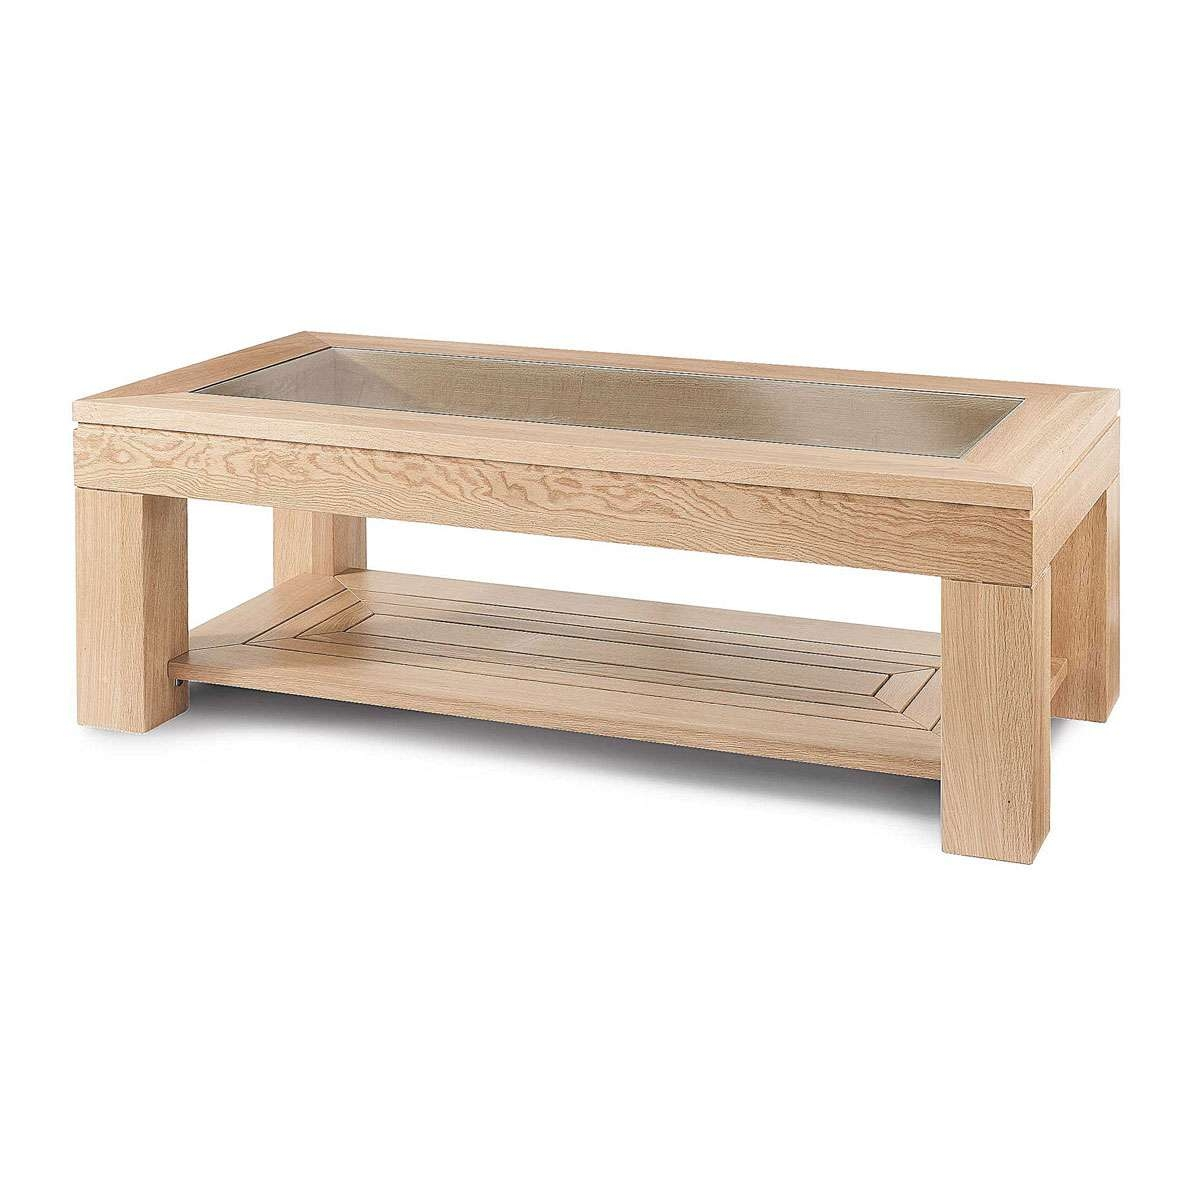 Latest Glass And Oak Coffee Tables Inside Oak Coffee Table With Glass Top – Gray Soft Carpet Area, Clear (View 6 of 20)